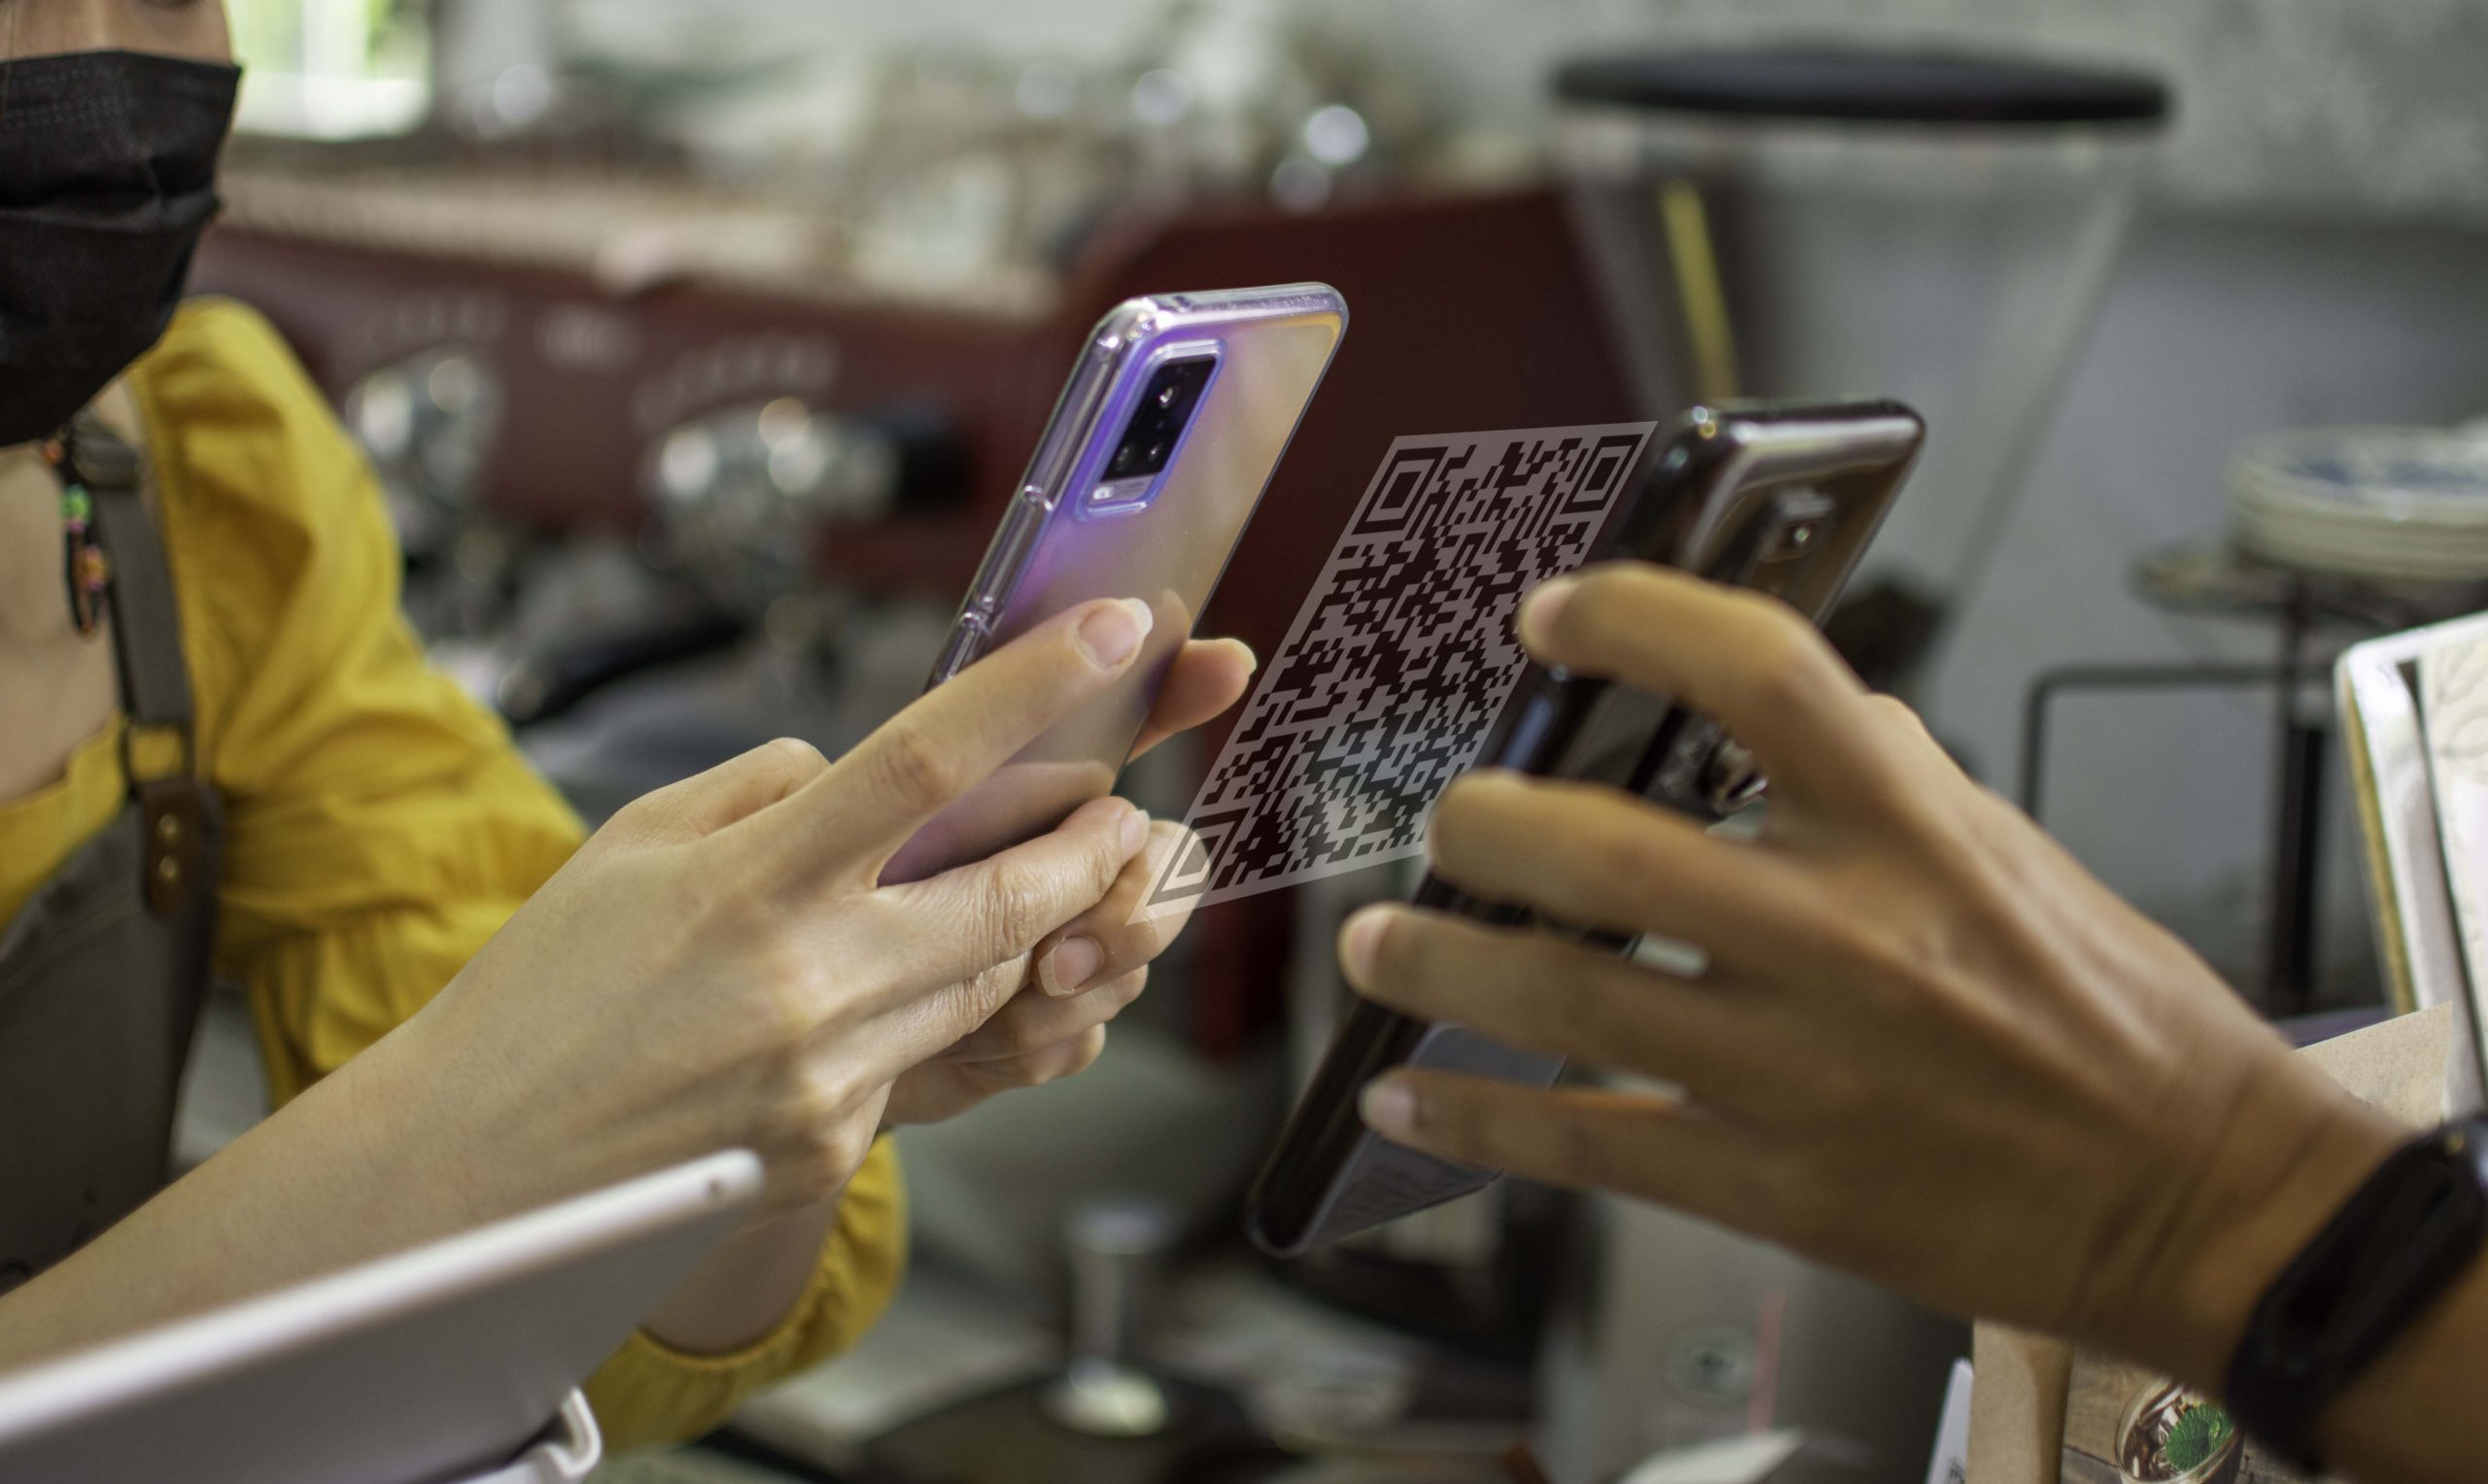 Qr codes and NFTs to spike the Future of Payments